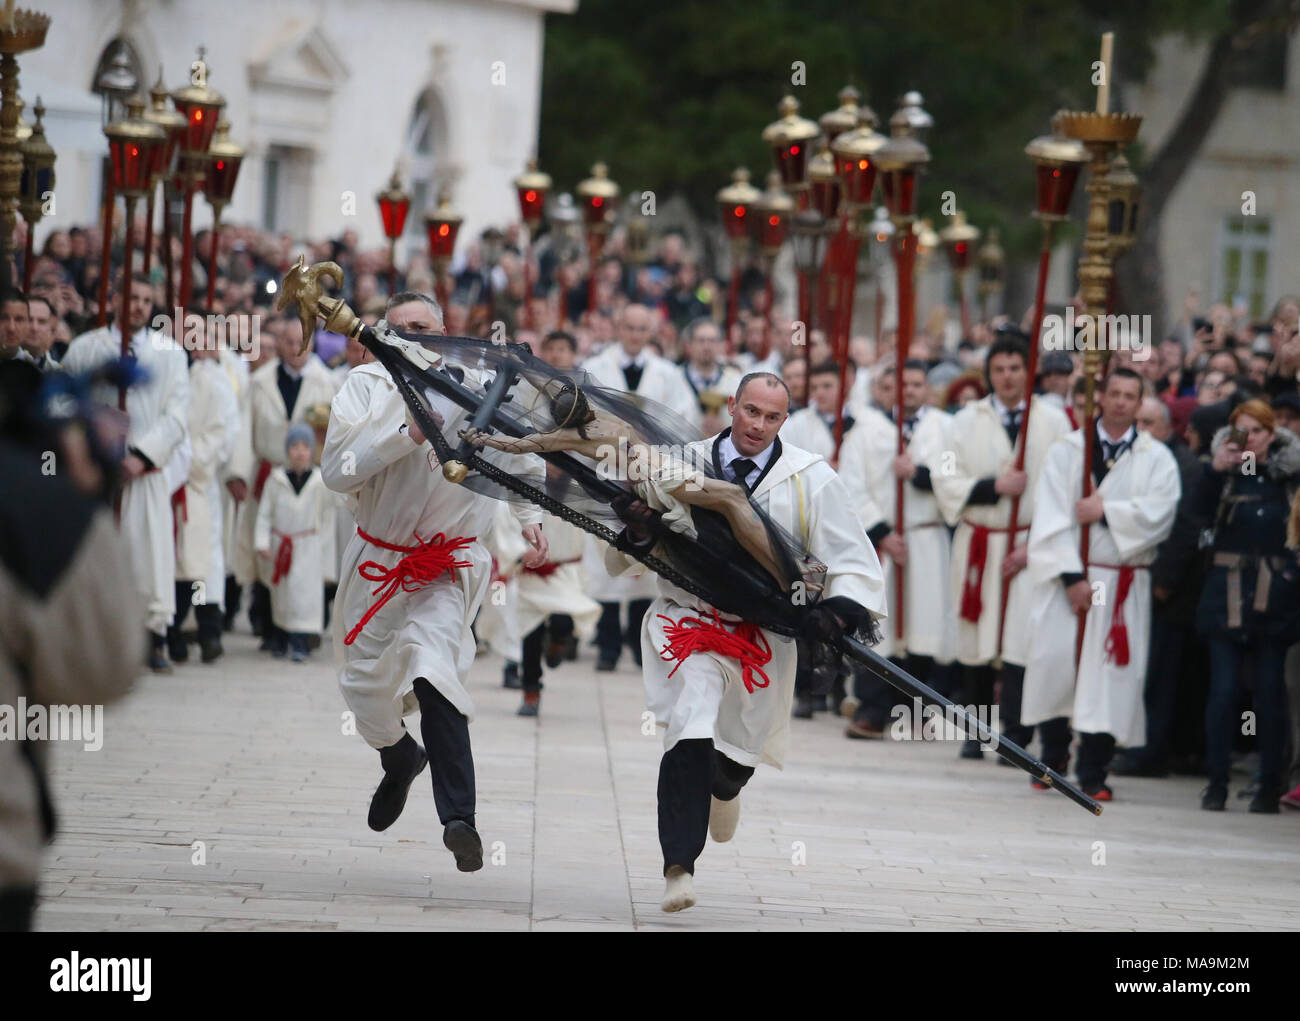 Hvar, Croatia. 30th Mar, 2018. People take part in Procession Za Krizen on the island of Hvar, Croatia, on March 30, 2018. Procession Za Krizen, known as 'following the cross', takes place before the Christian holiday of Easter. It was inscribed on the Representative List of the UNESCO's Intangible Cultural Heritage of Humanity in 2009. Credit: Ivo Cagalj/Xinhua/Alamy Live News - Stock Image